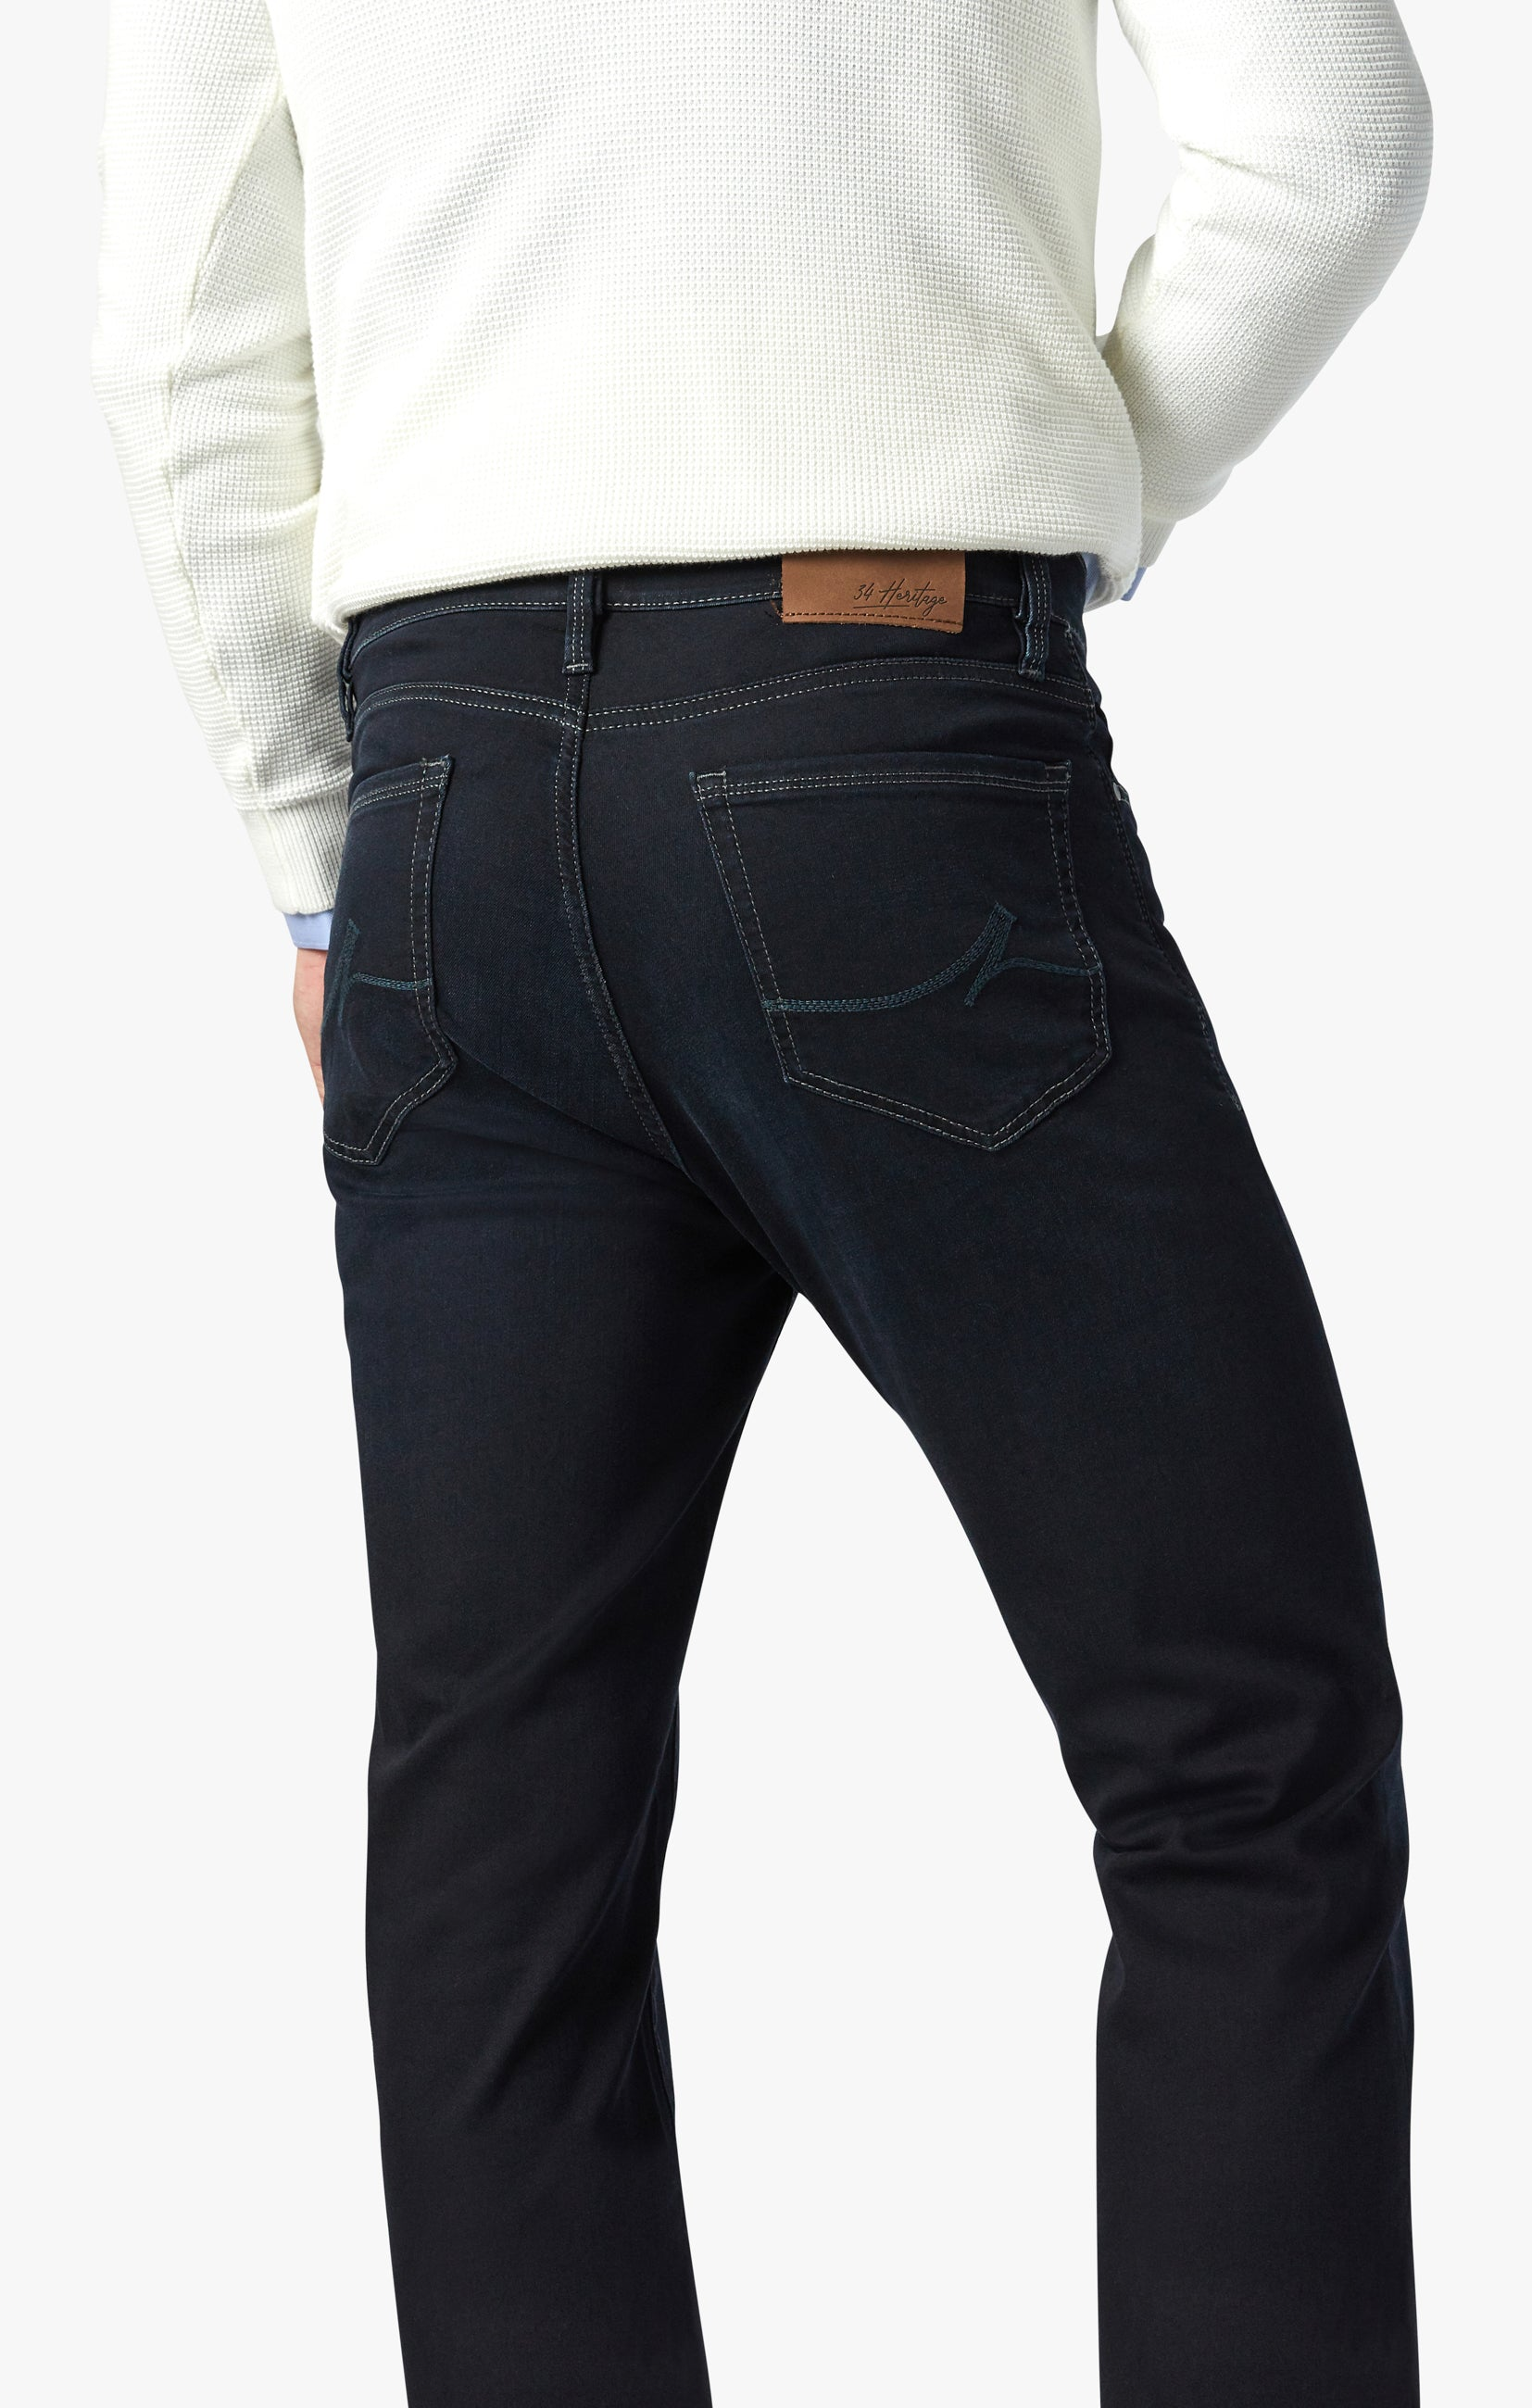 Champ Athletic Fit Jeans In Midnight Austin Image 8